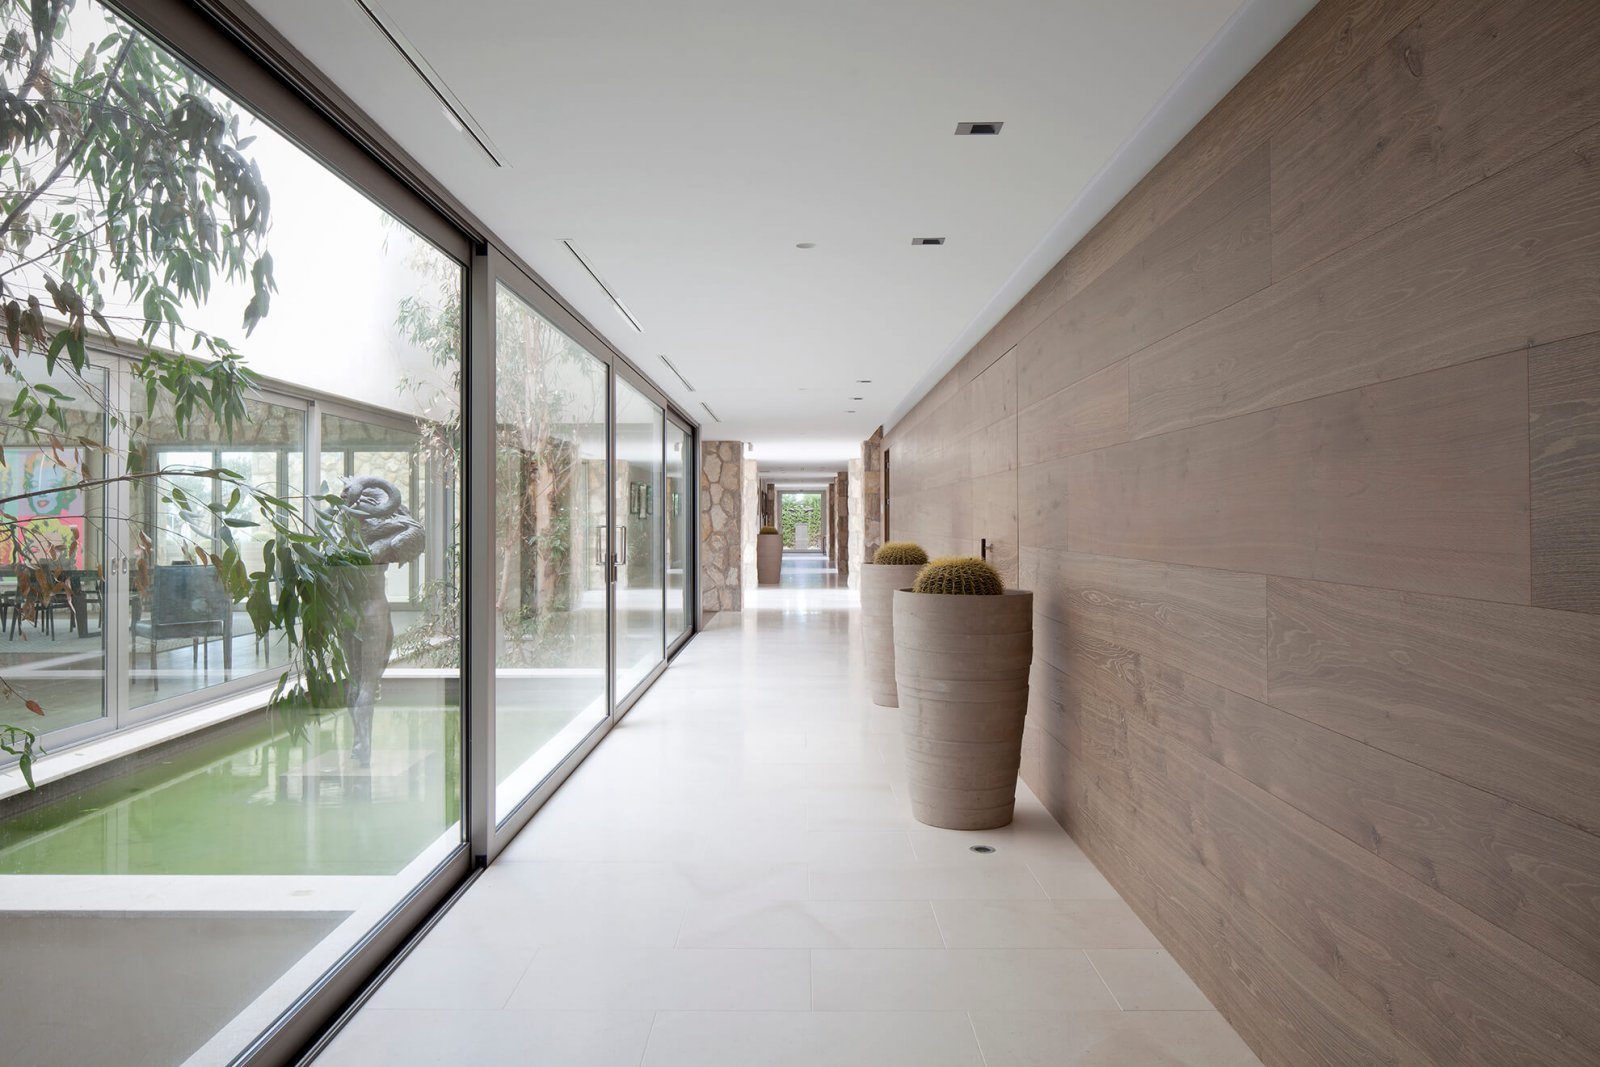 Detail view of one of the corridors of casa london, with sliding glass doors leading to an interior patio